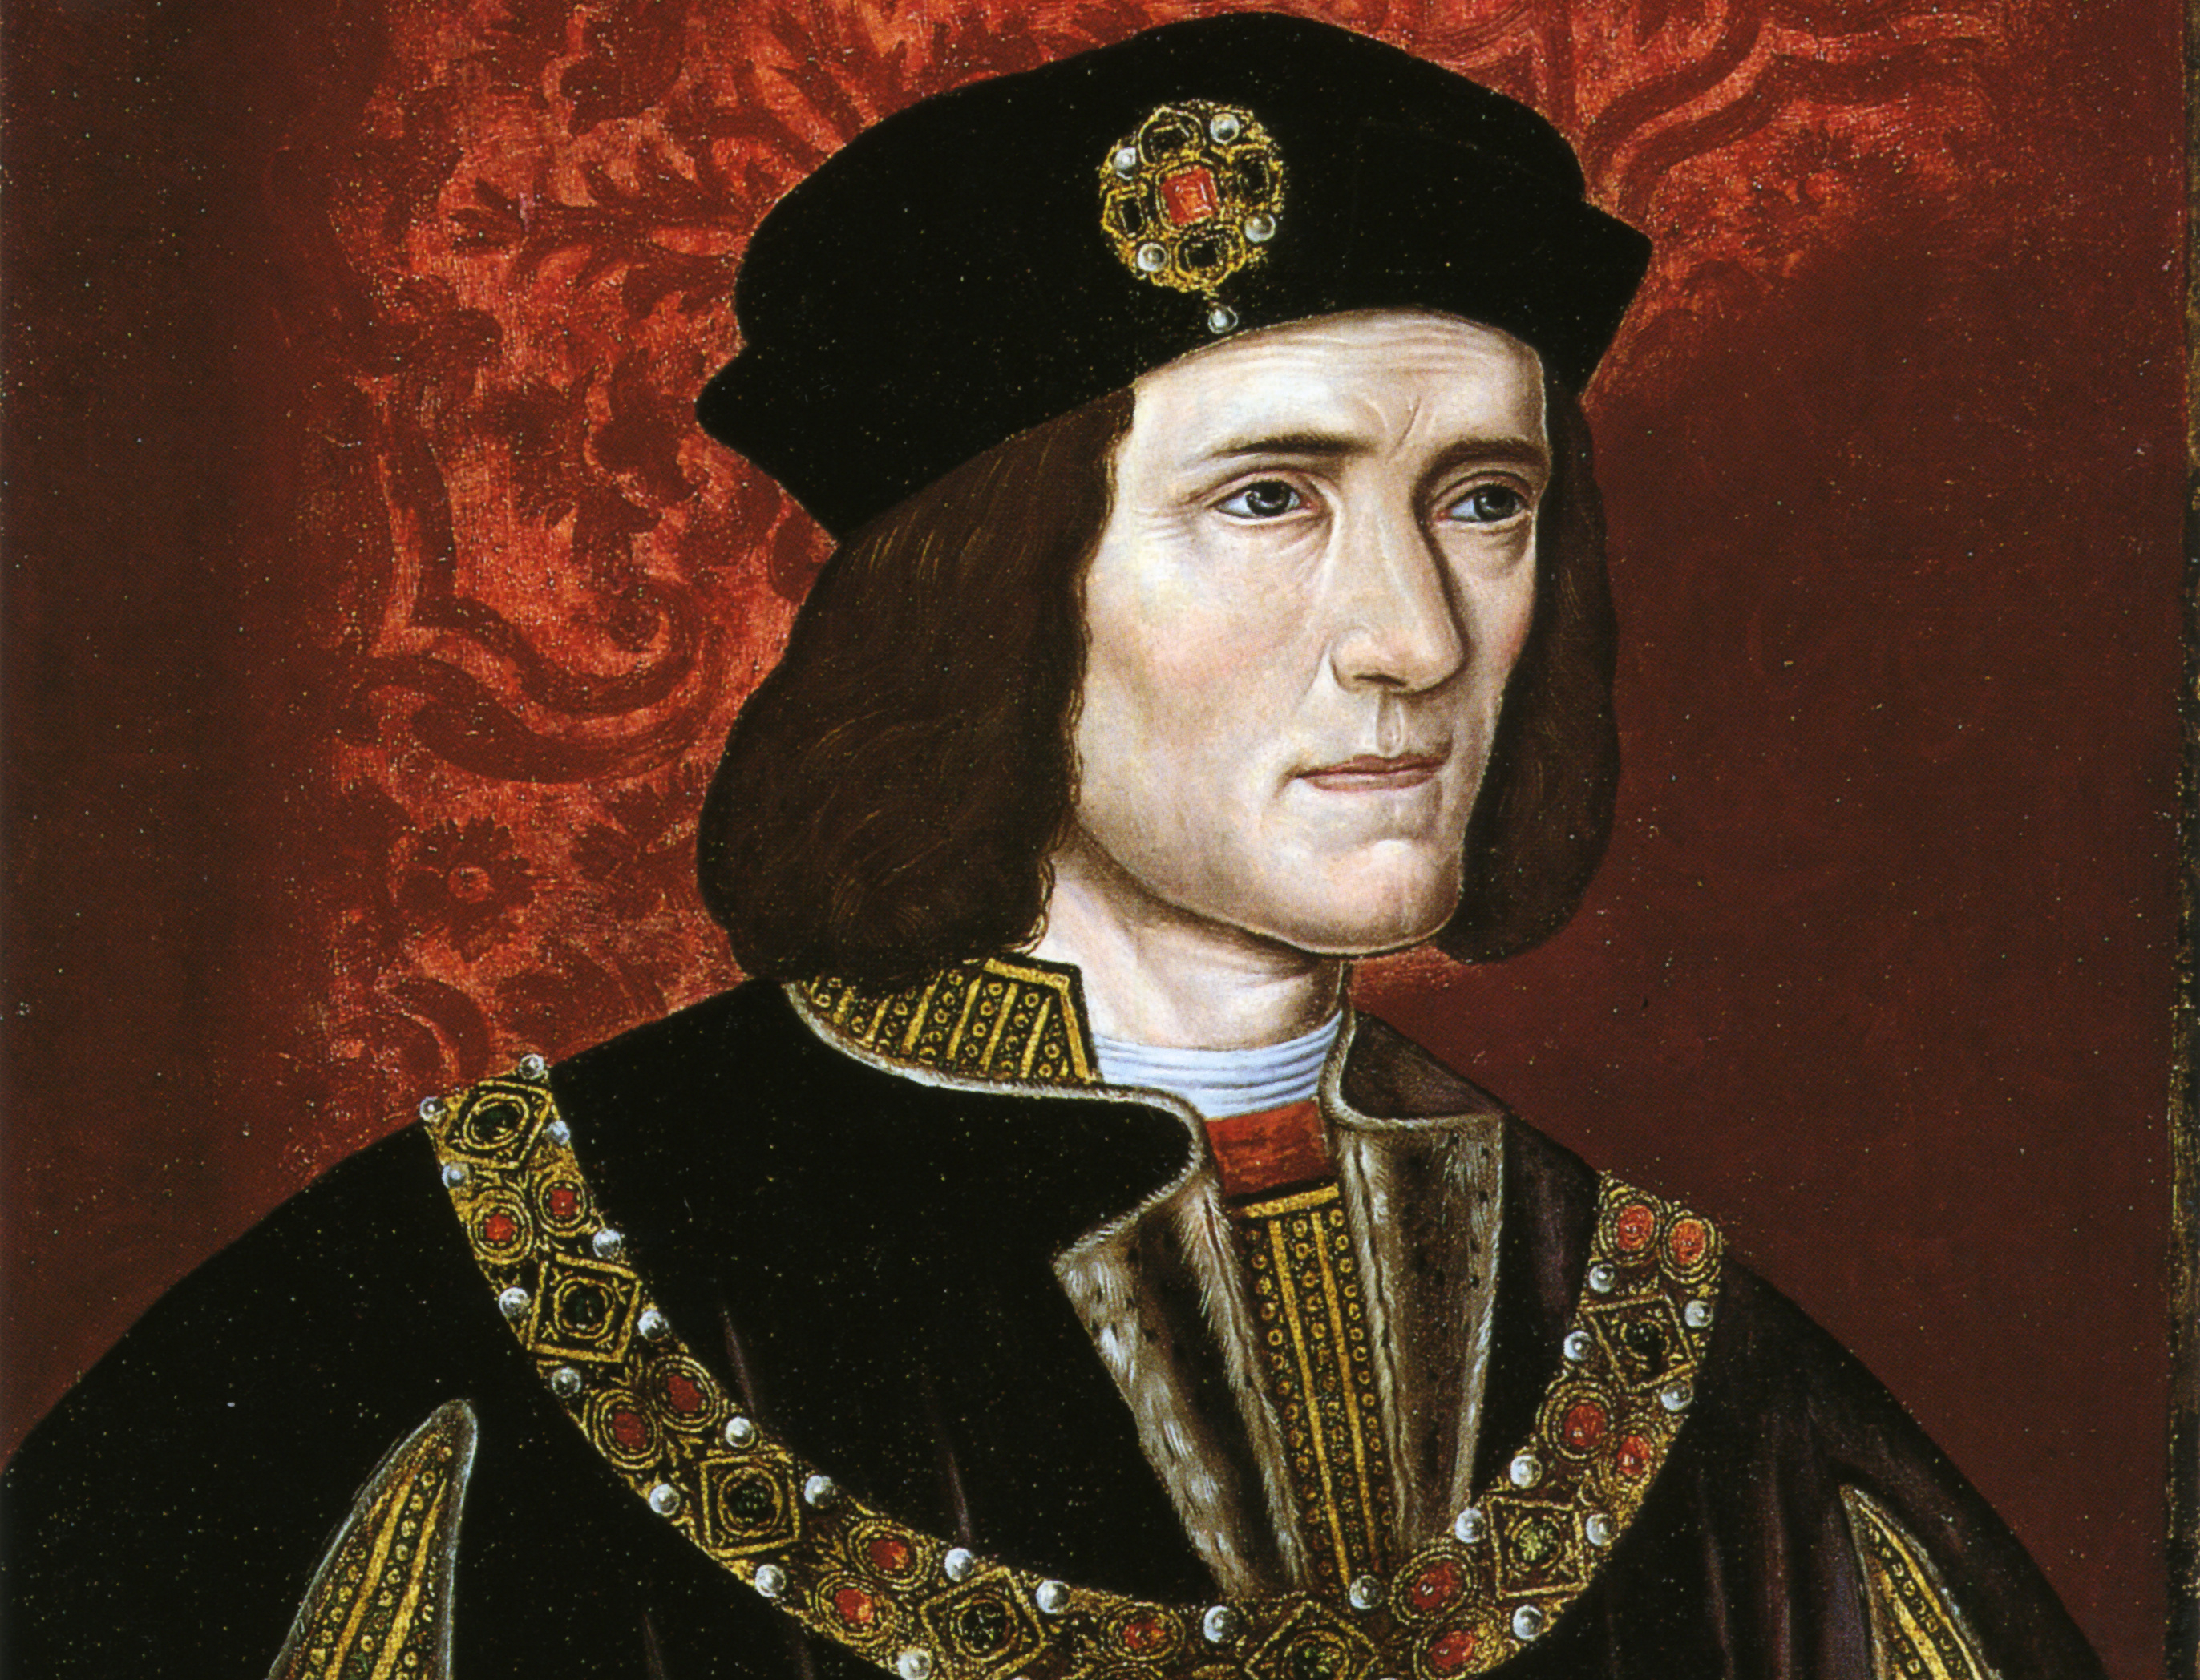 Richard III facts